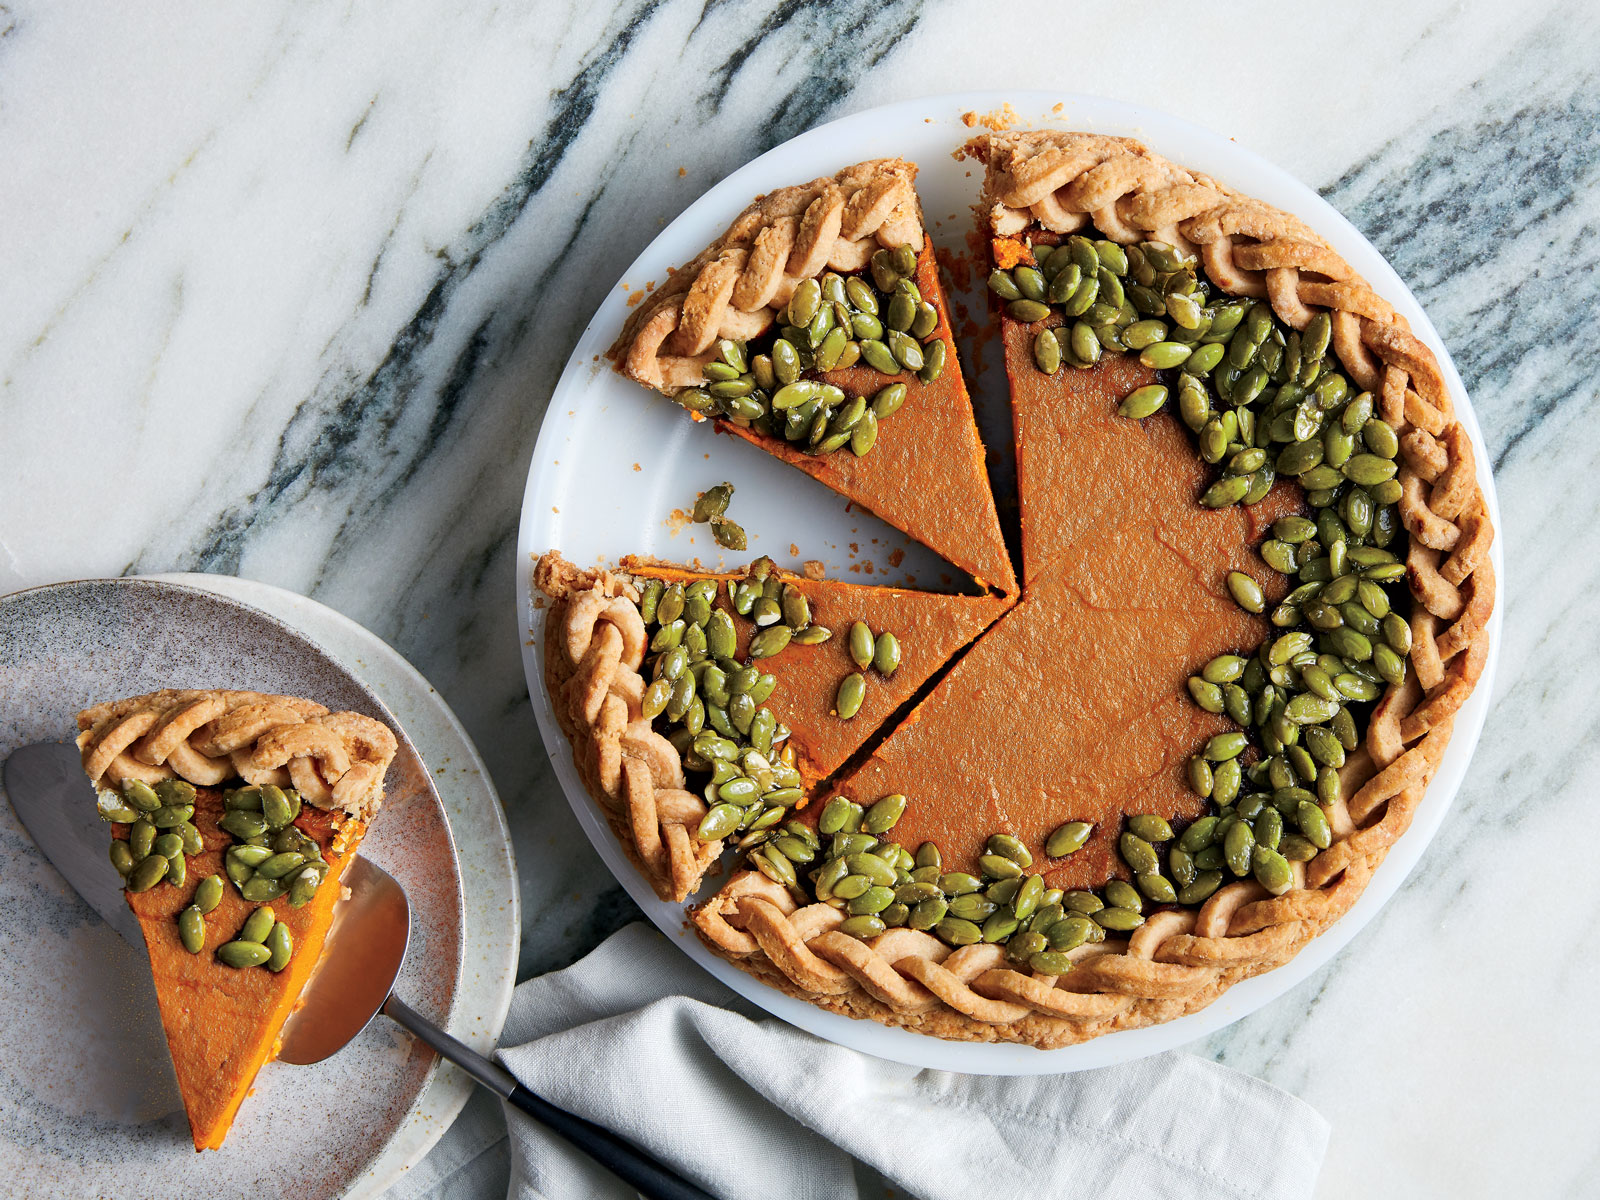 Gingered Pumpkin Pie with Candied Pepitas